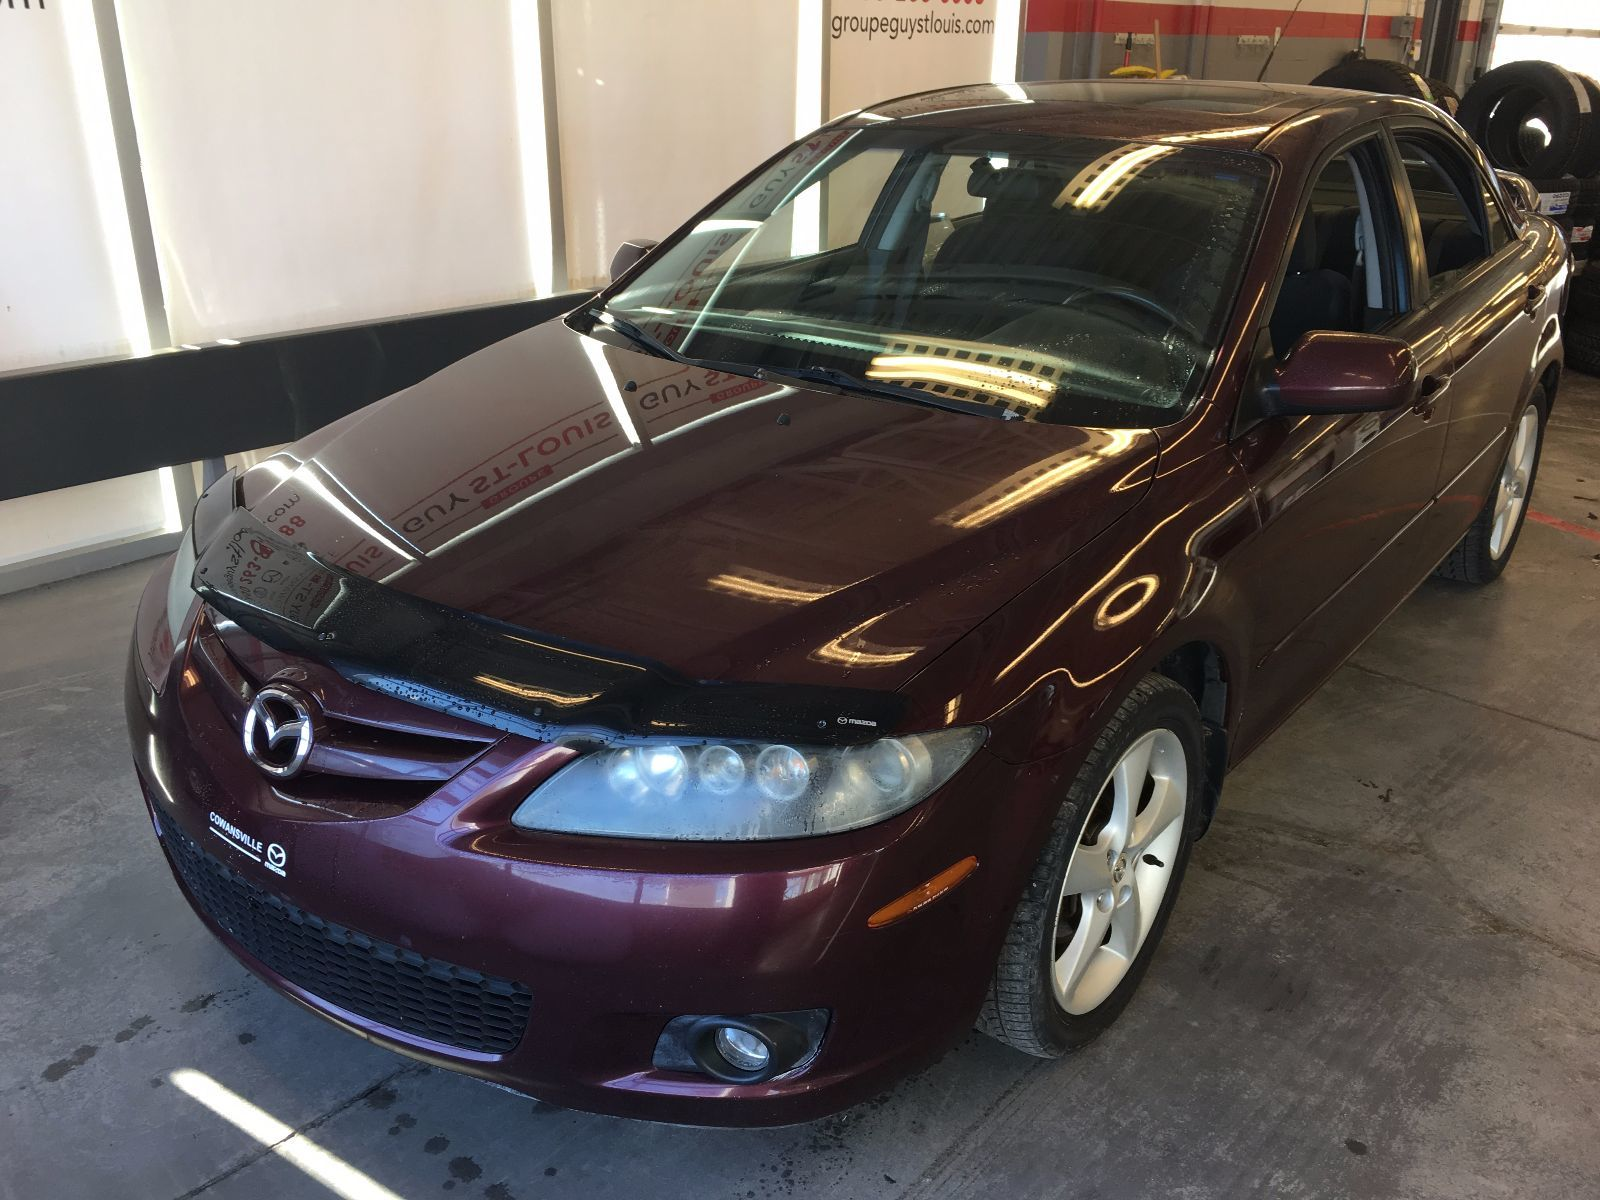 Pre Owned 2006 Mazda Mazda6 Gs Edition Touring In Cowansville 6 Fuel Filter Inventory Quebec